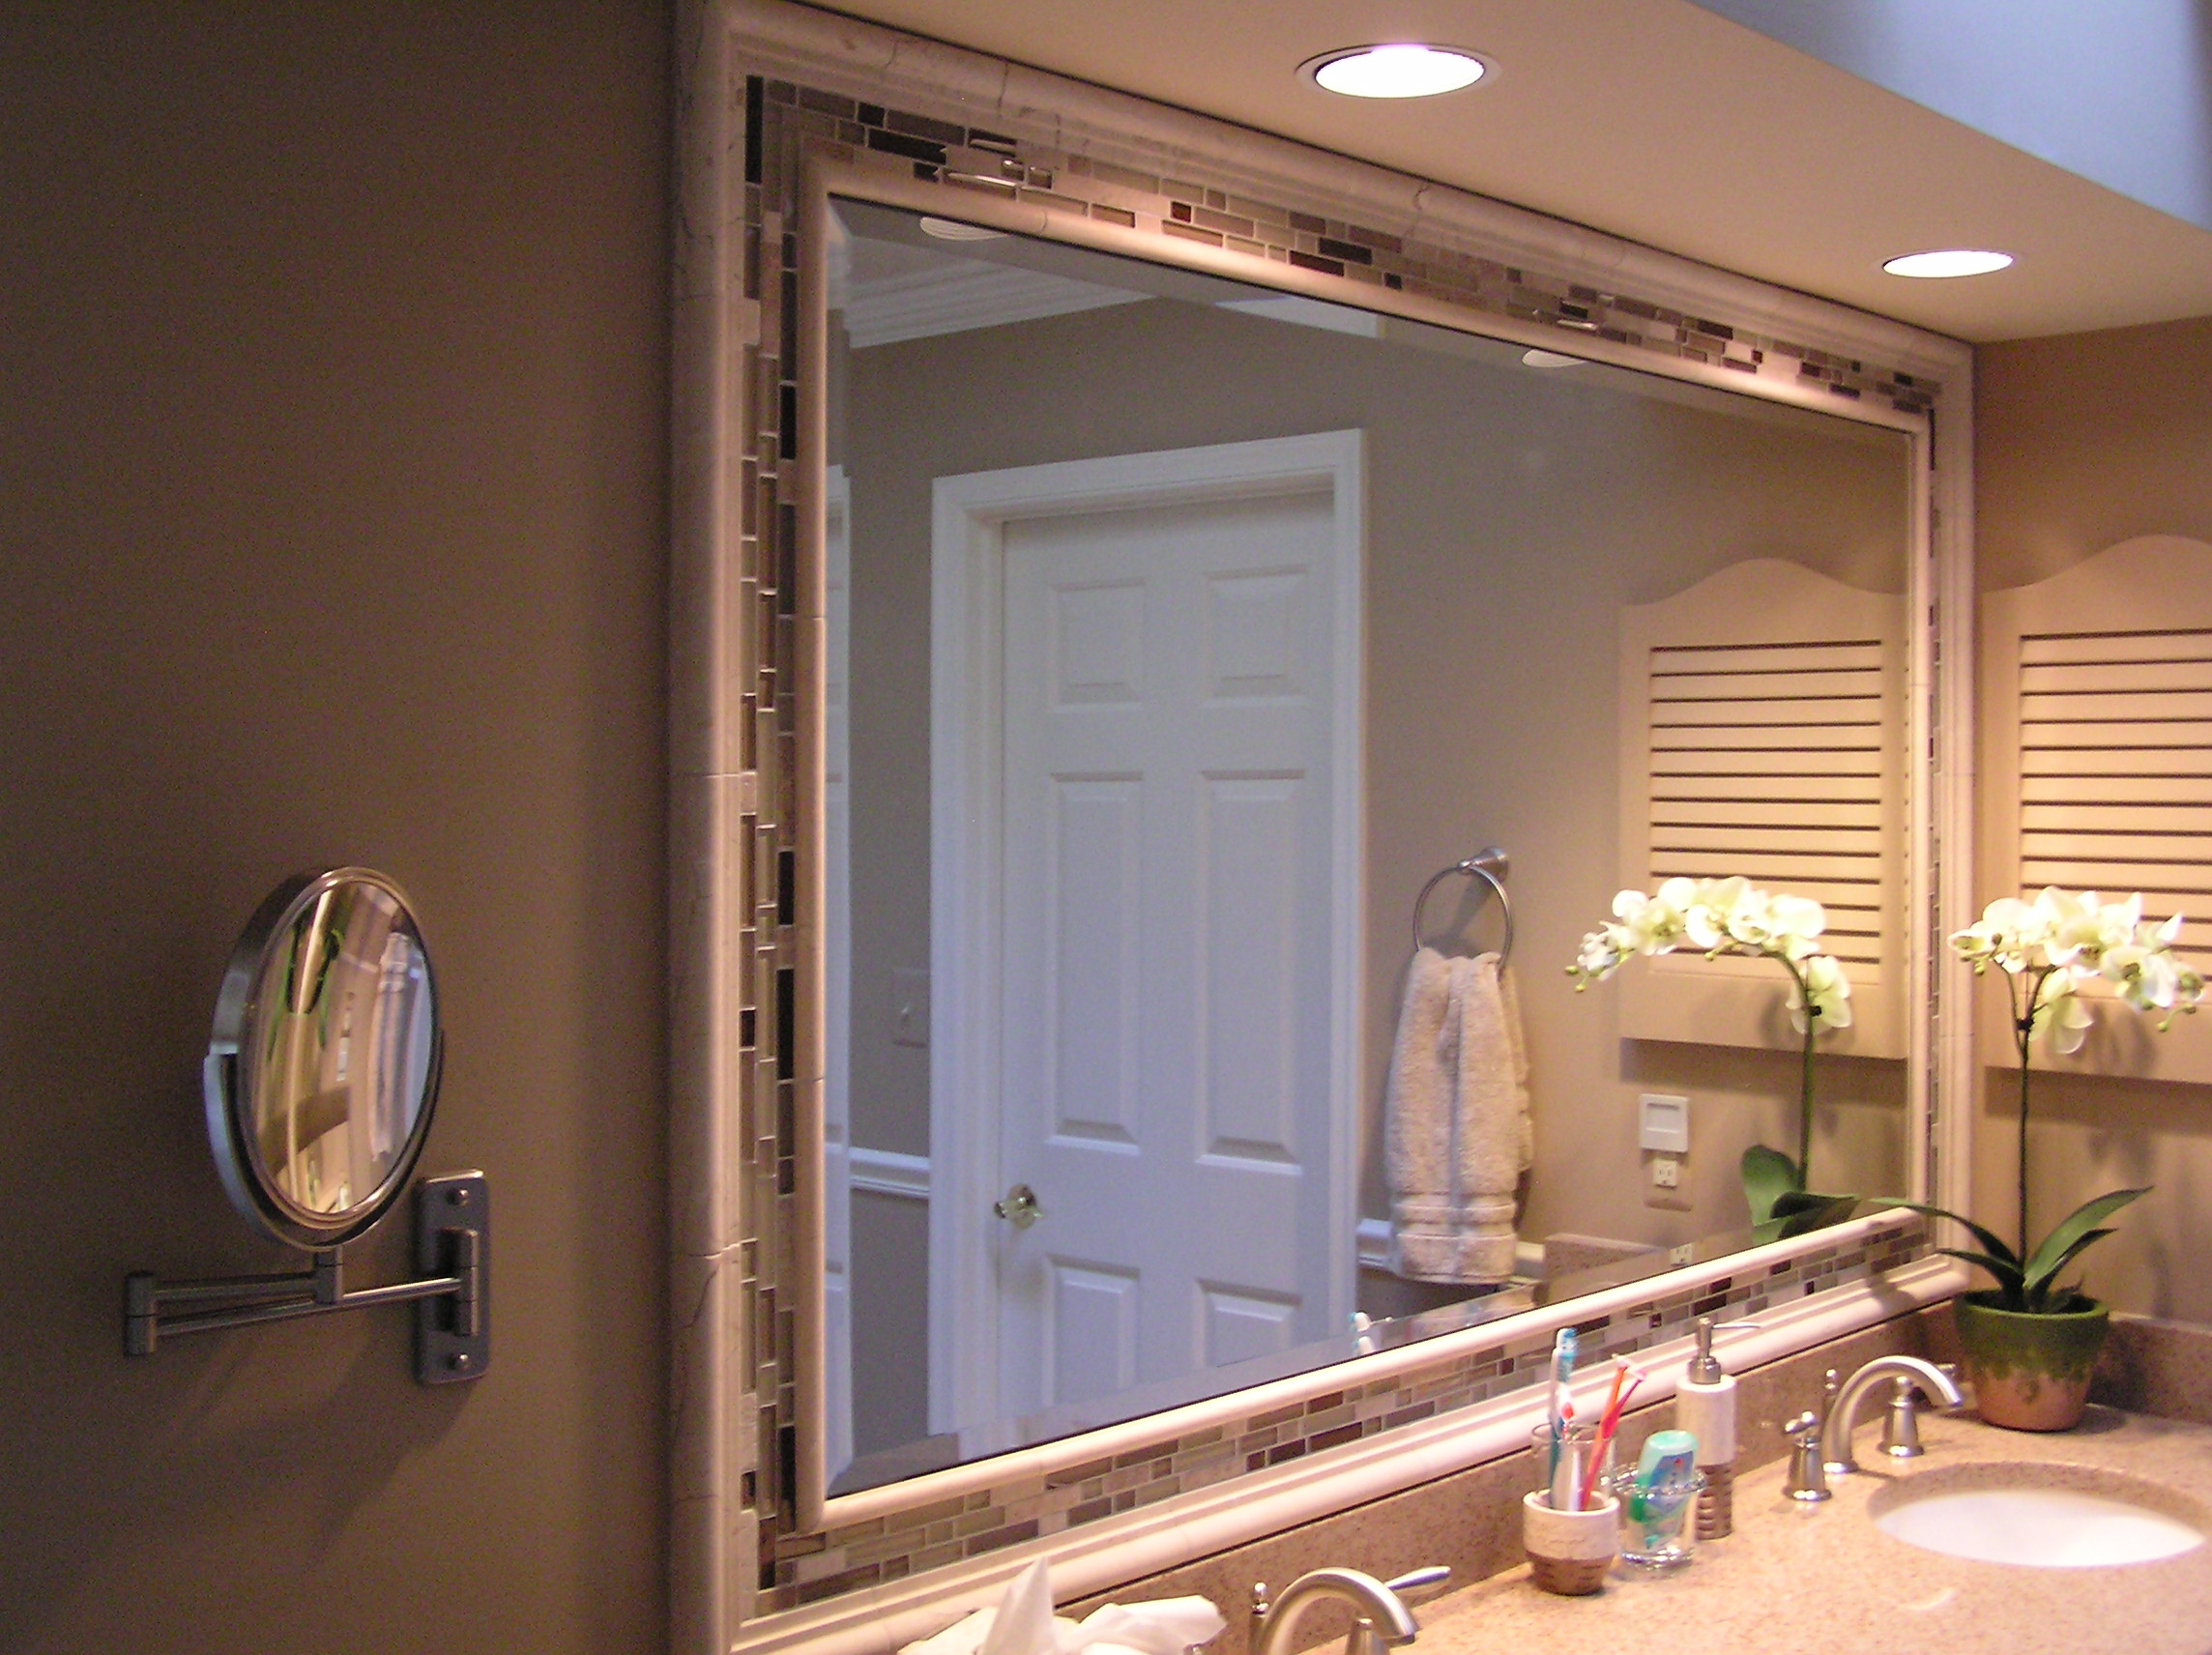 Bathroom vanity mirror ideas large and beautiful photos for Bathroom mirror ideas for a small bathroom